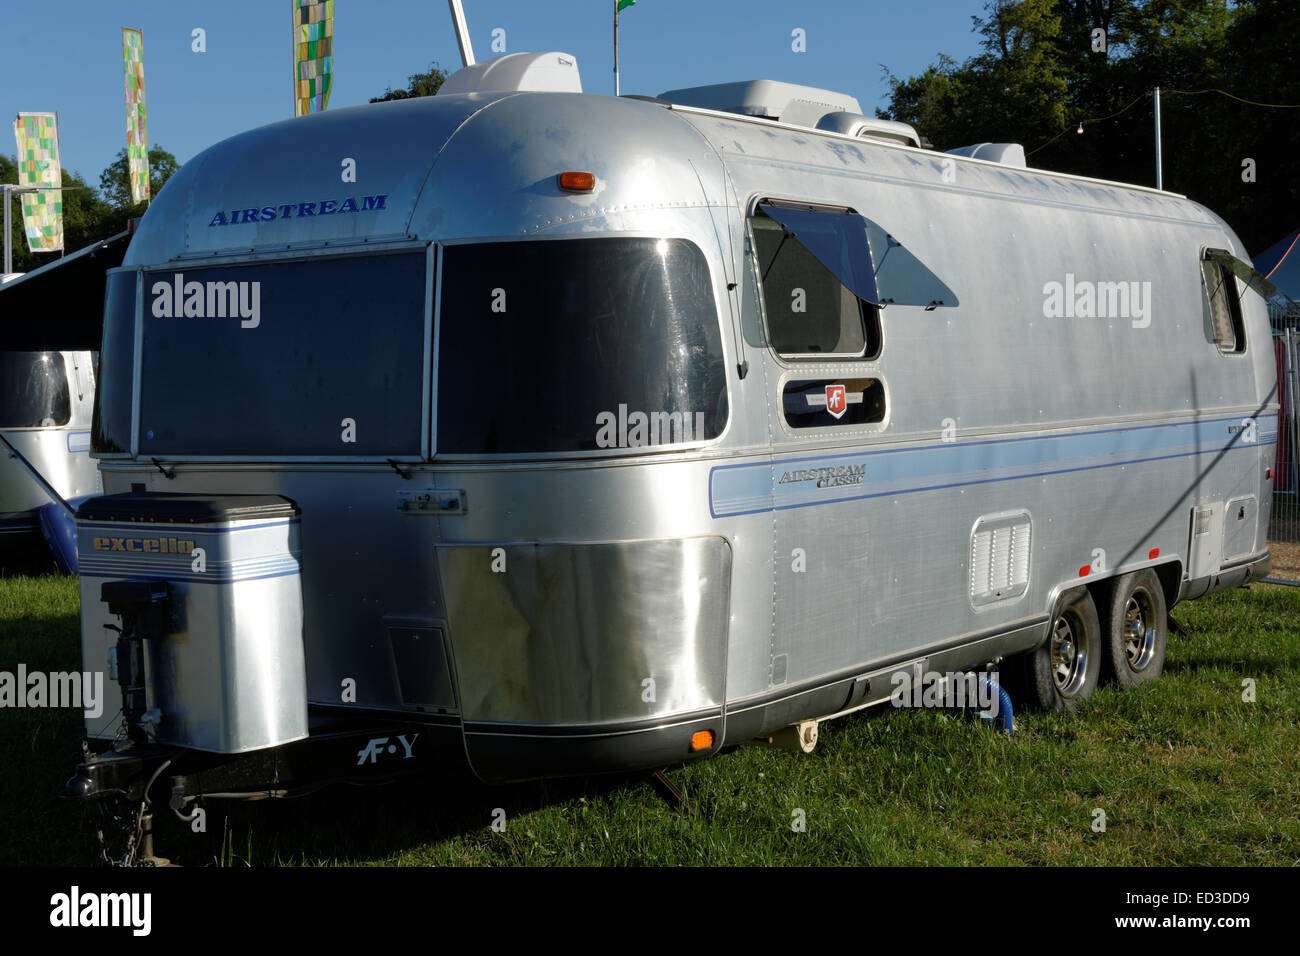 Caravane Airstream Metal WOMAD, Glamping, Charlton Park, Malmesbury, Wiltshire, Angleterre Banque D'Images